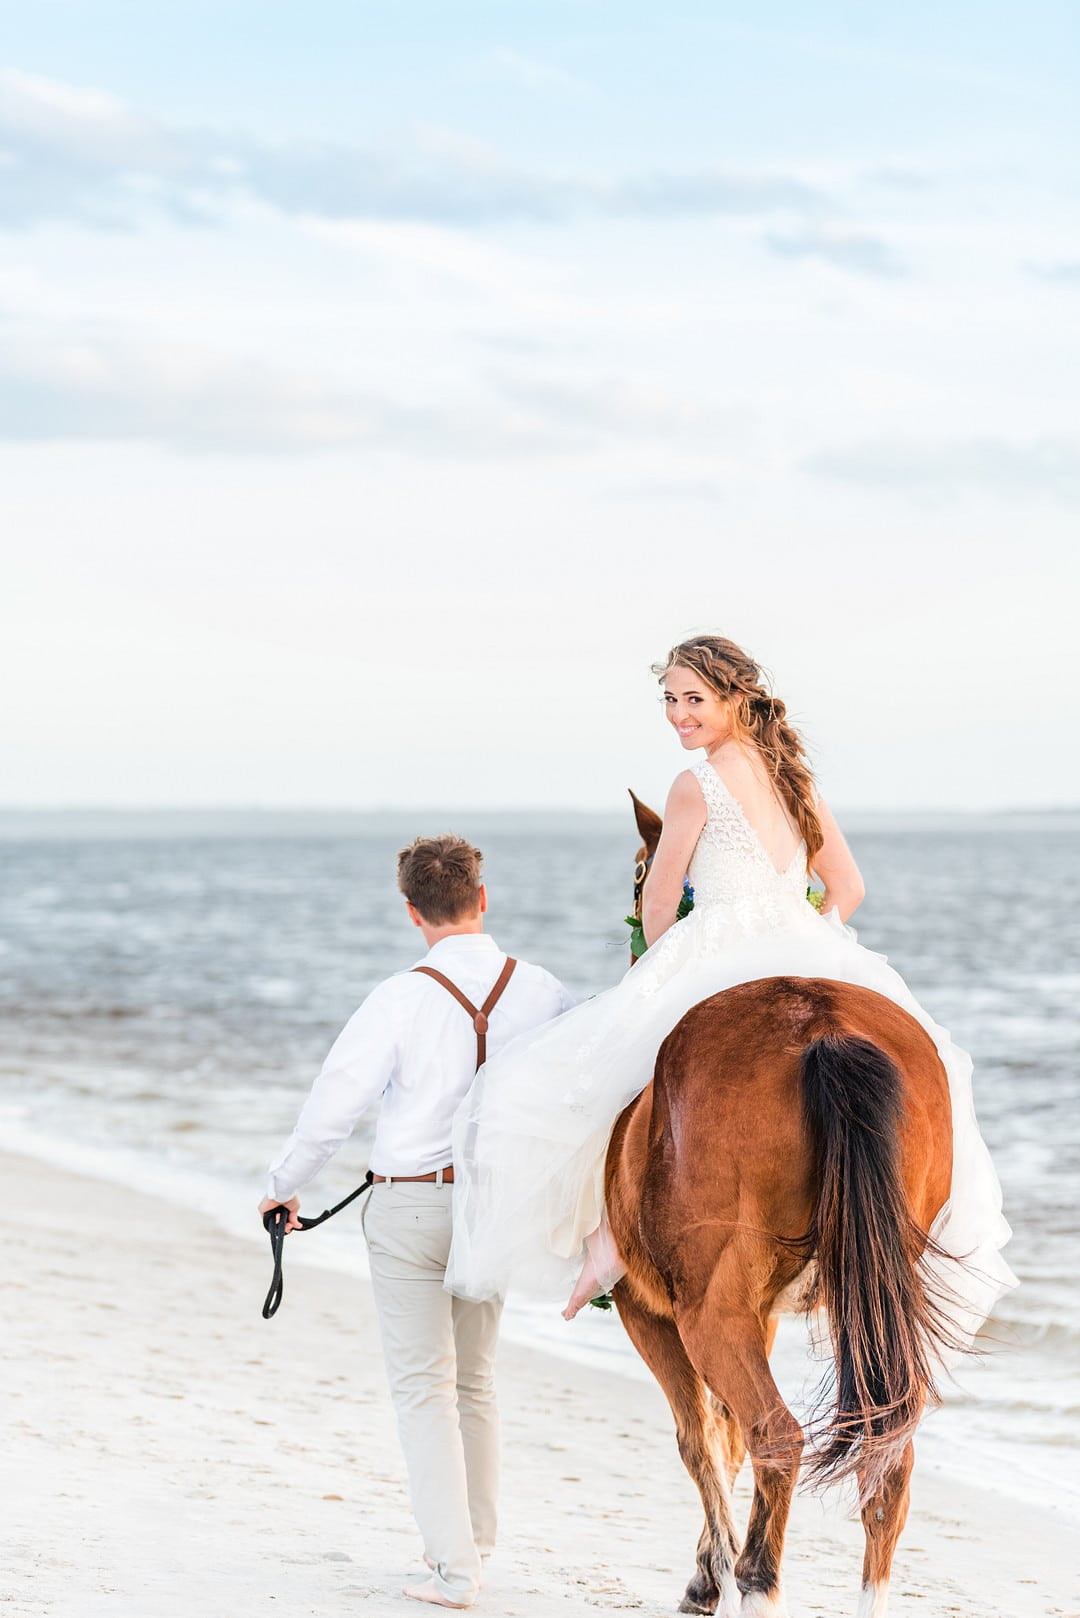 bride riding her horse and looking back while groom walks the horse